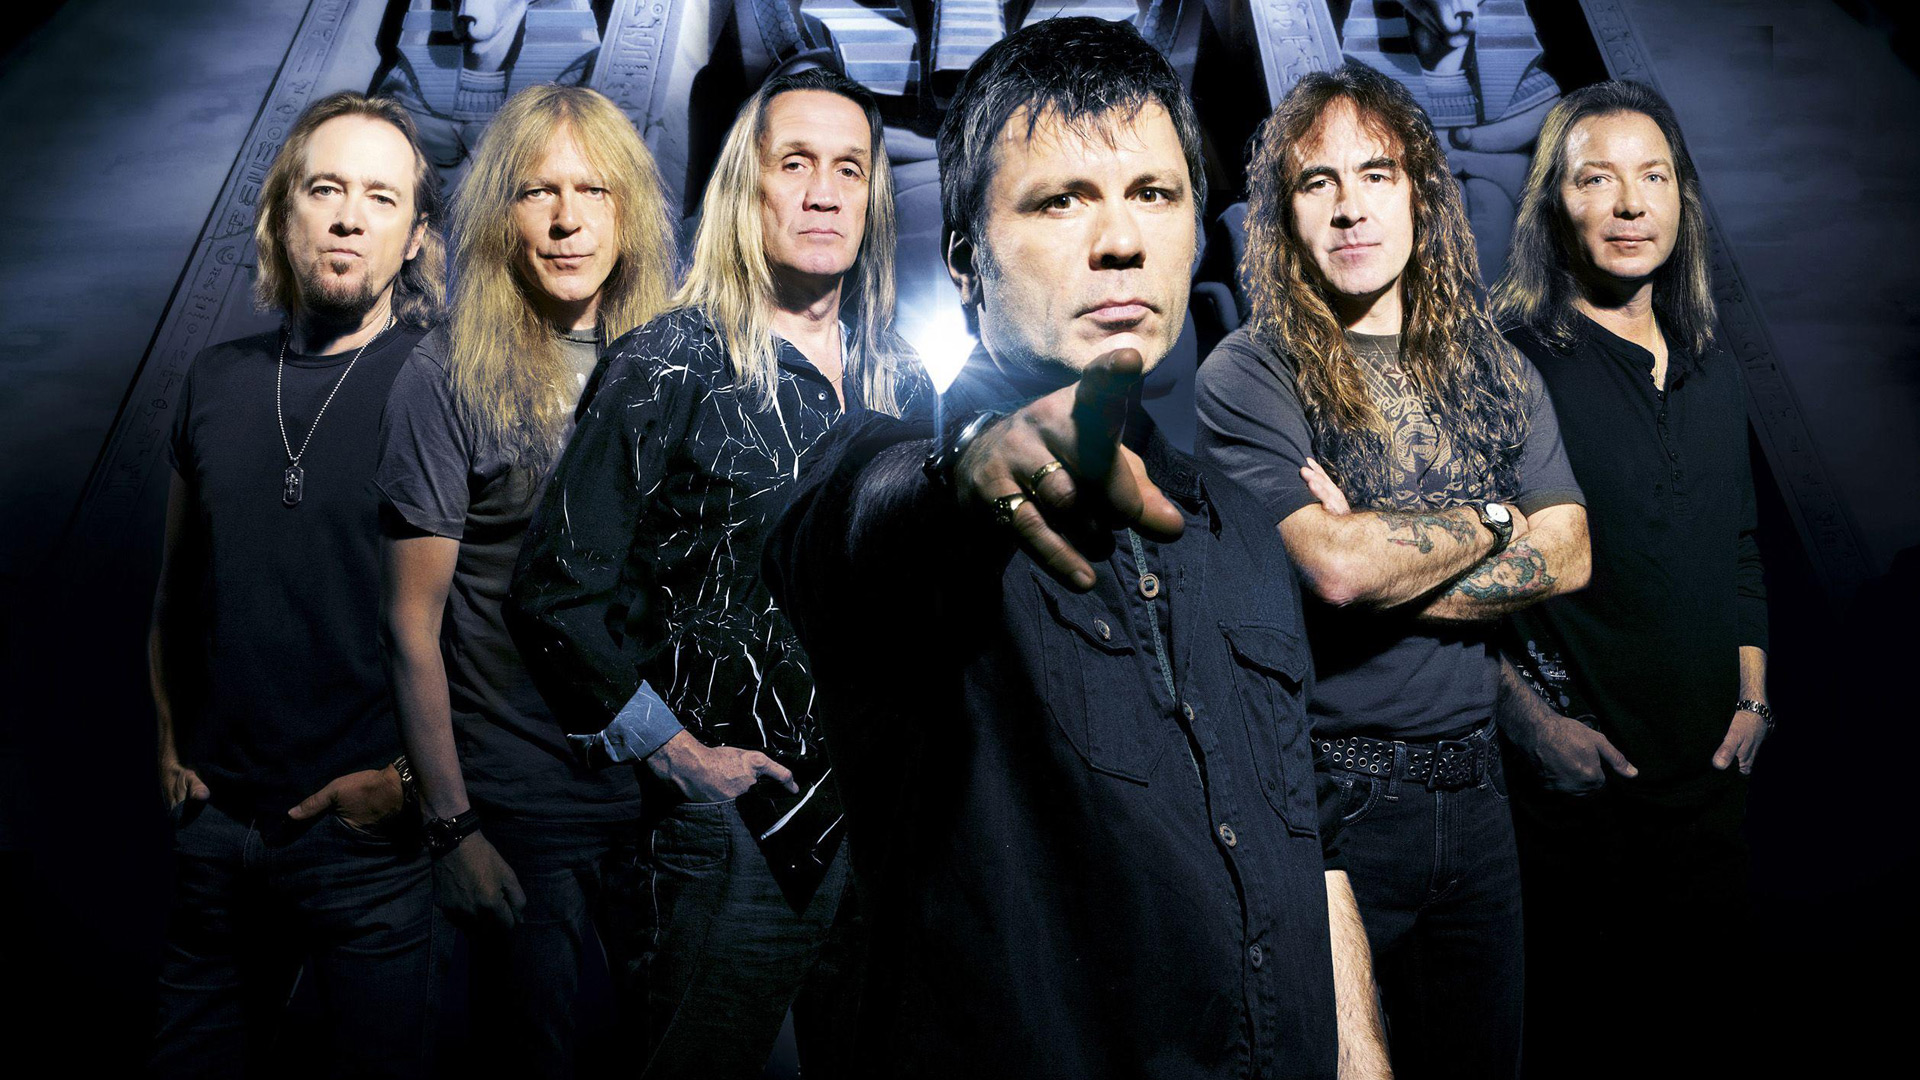 Can I Play With Madness? av Iron Maiden